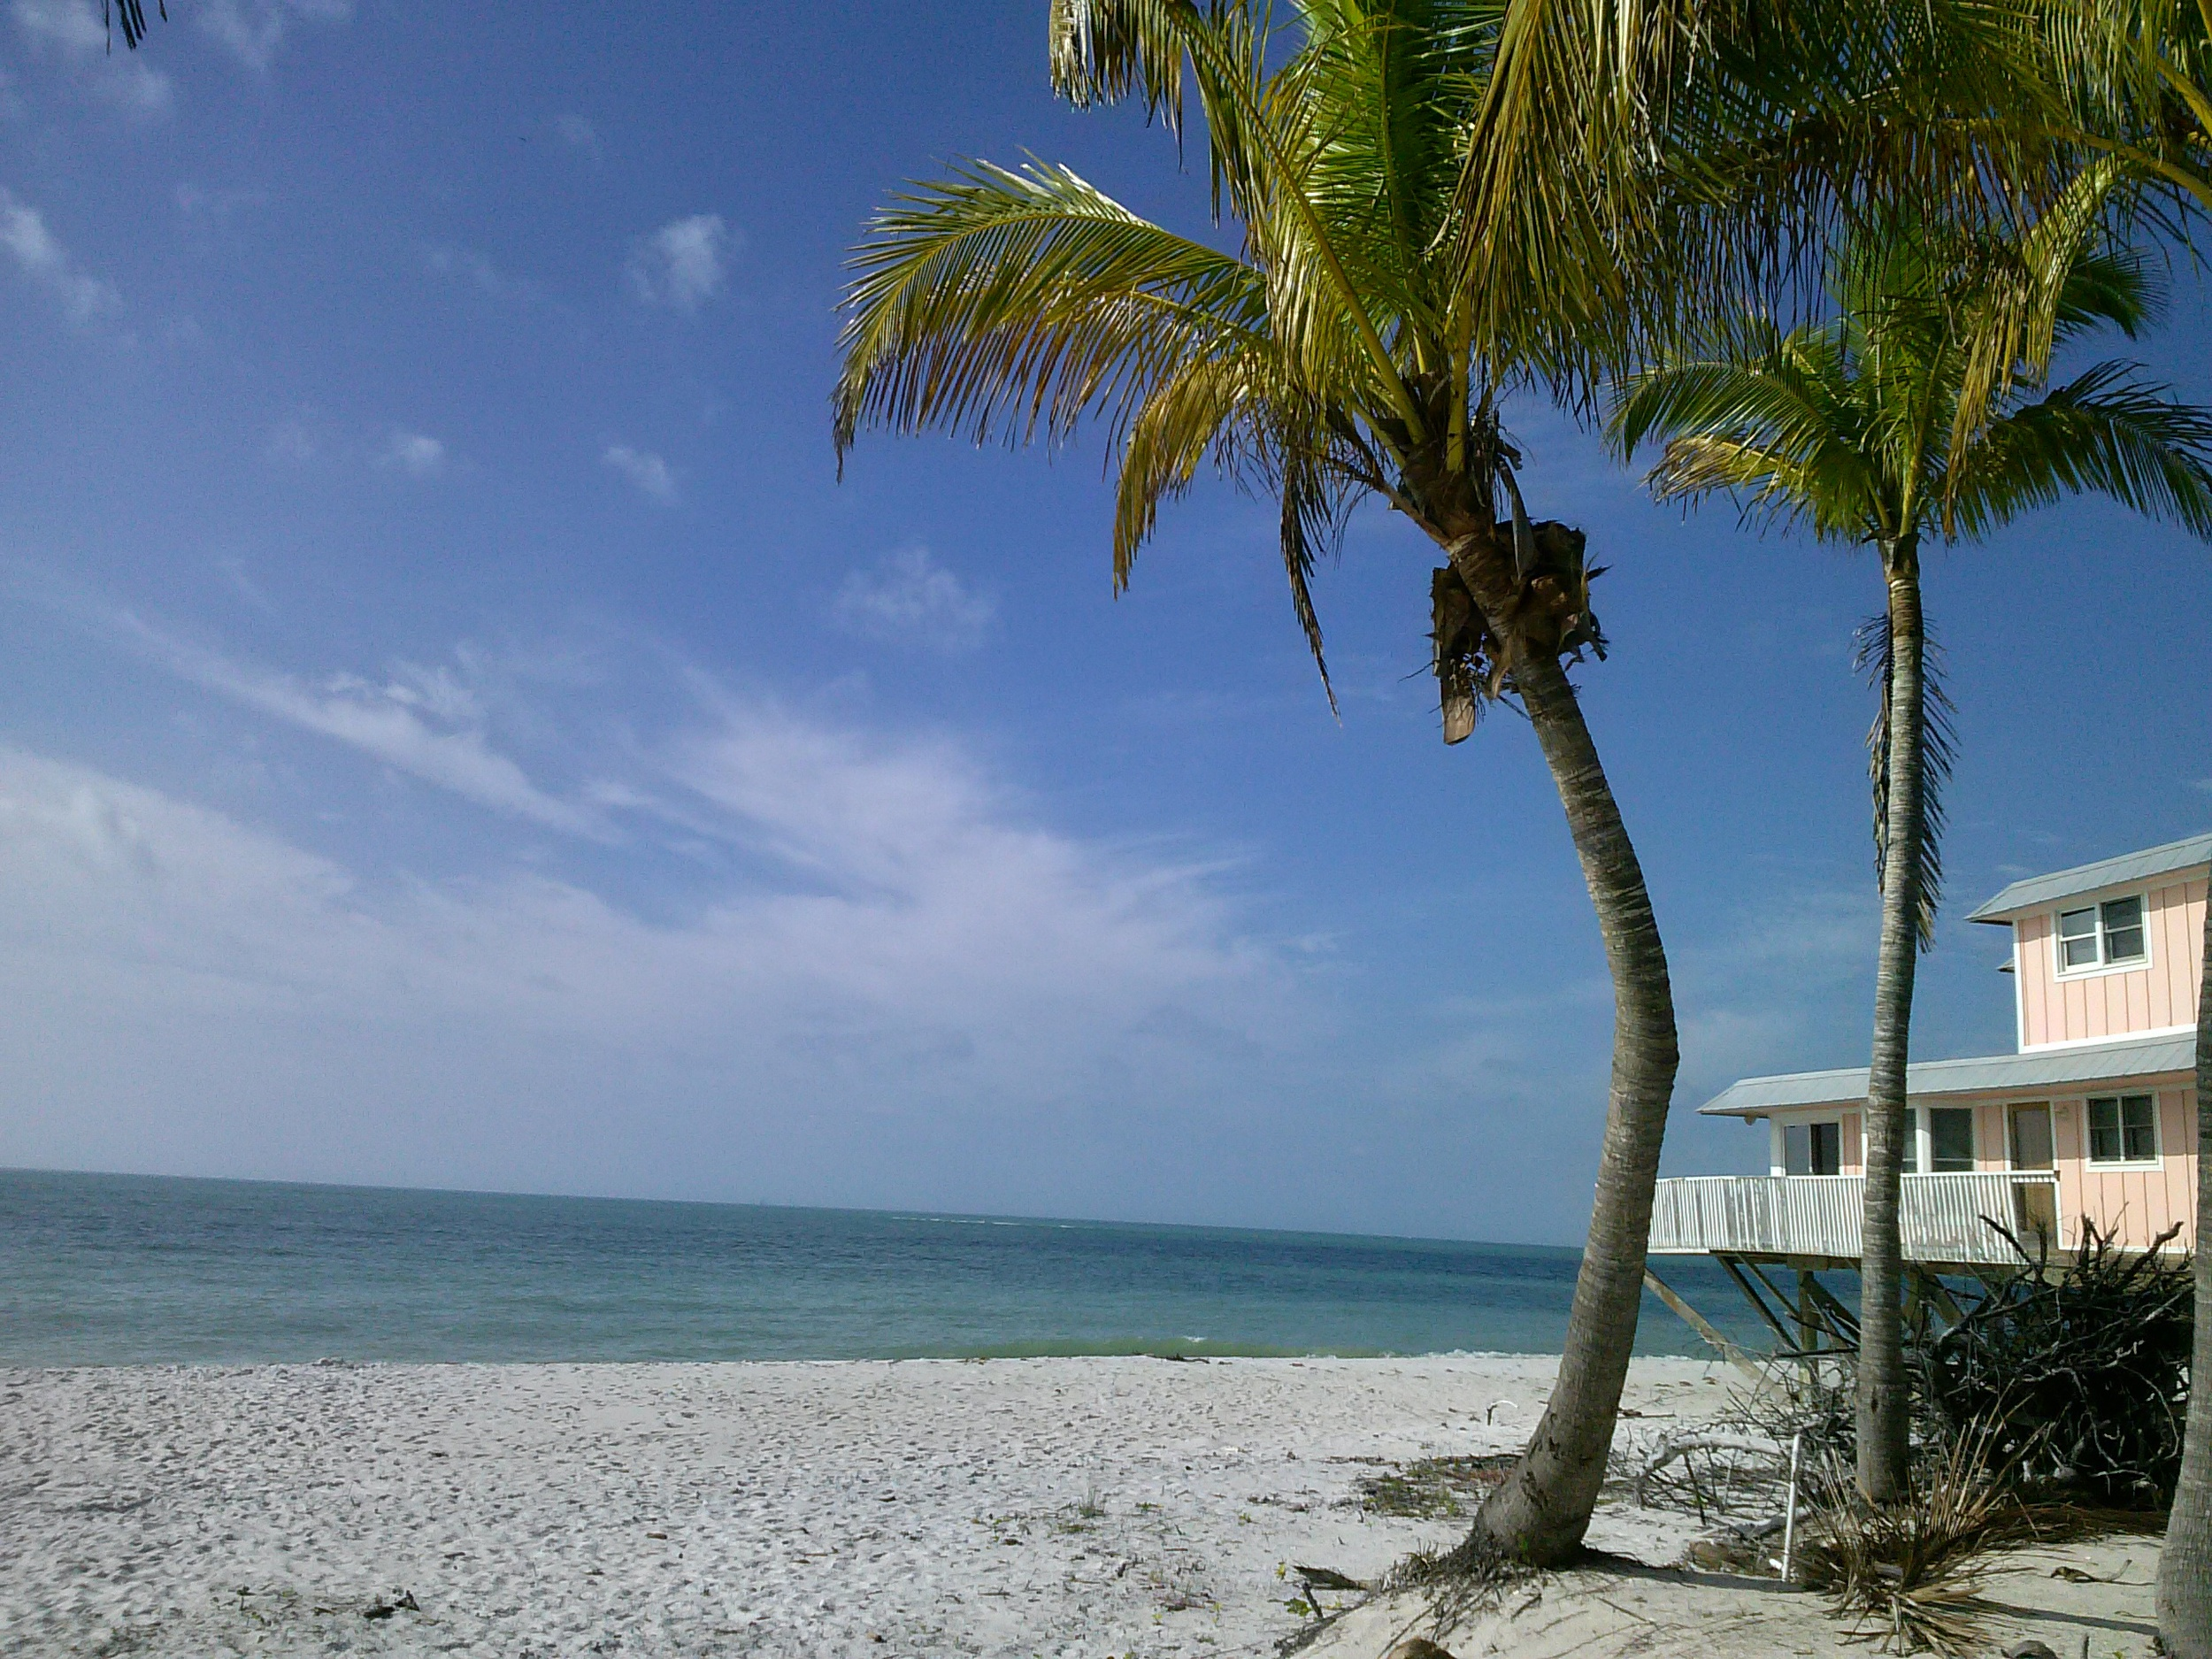 Just one of the beaches on North Captiva